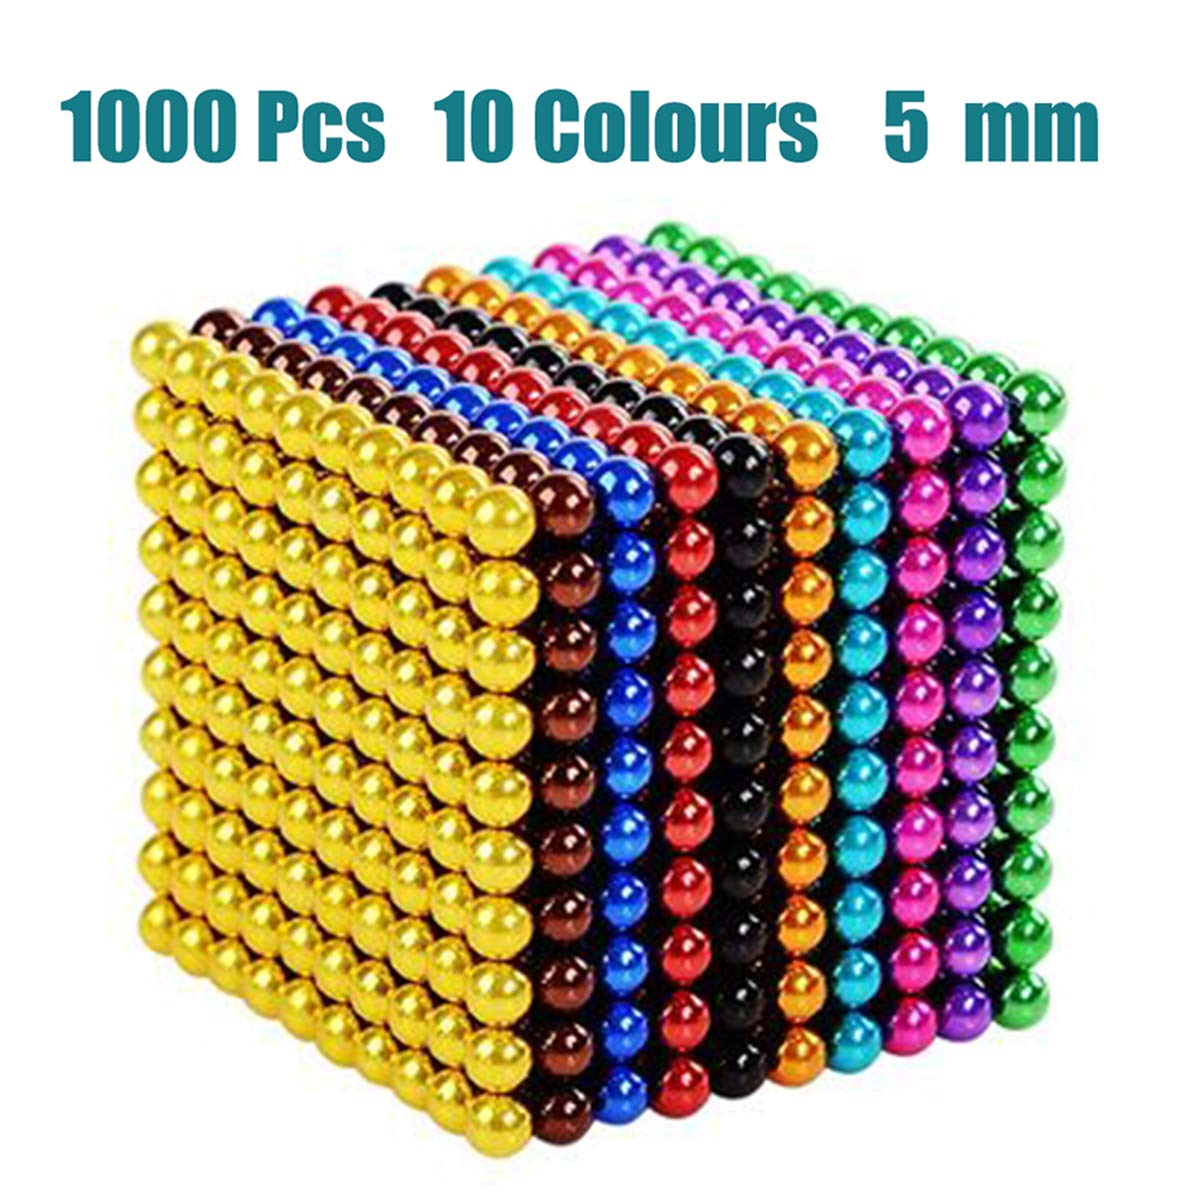 LOVEYIKOAI Upgraded 5MM 1000 Pcs 10 Colors Magnets Cube Building Blocks Magnetic Toys Colorful Buildable Sculpture Office Stress Relief Toys for Adults by LOVEYIKOAI